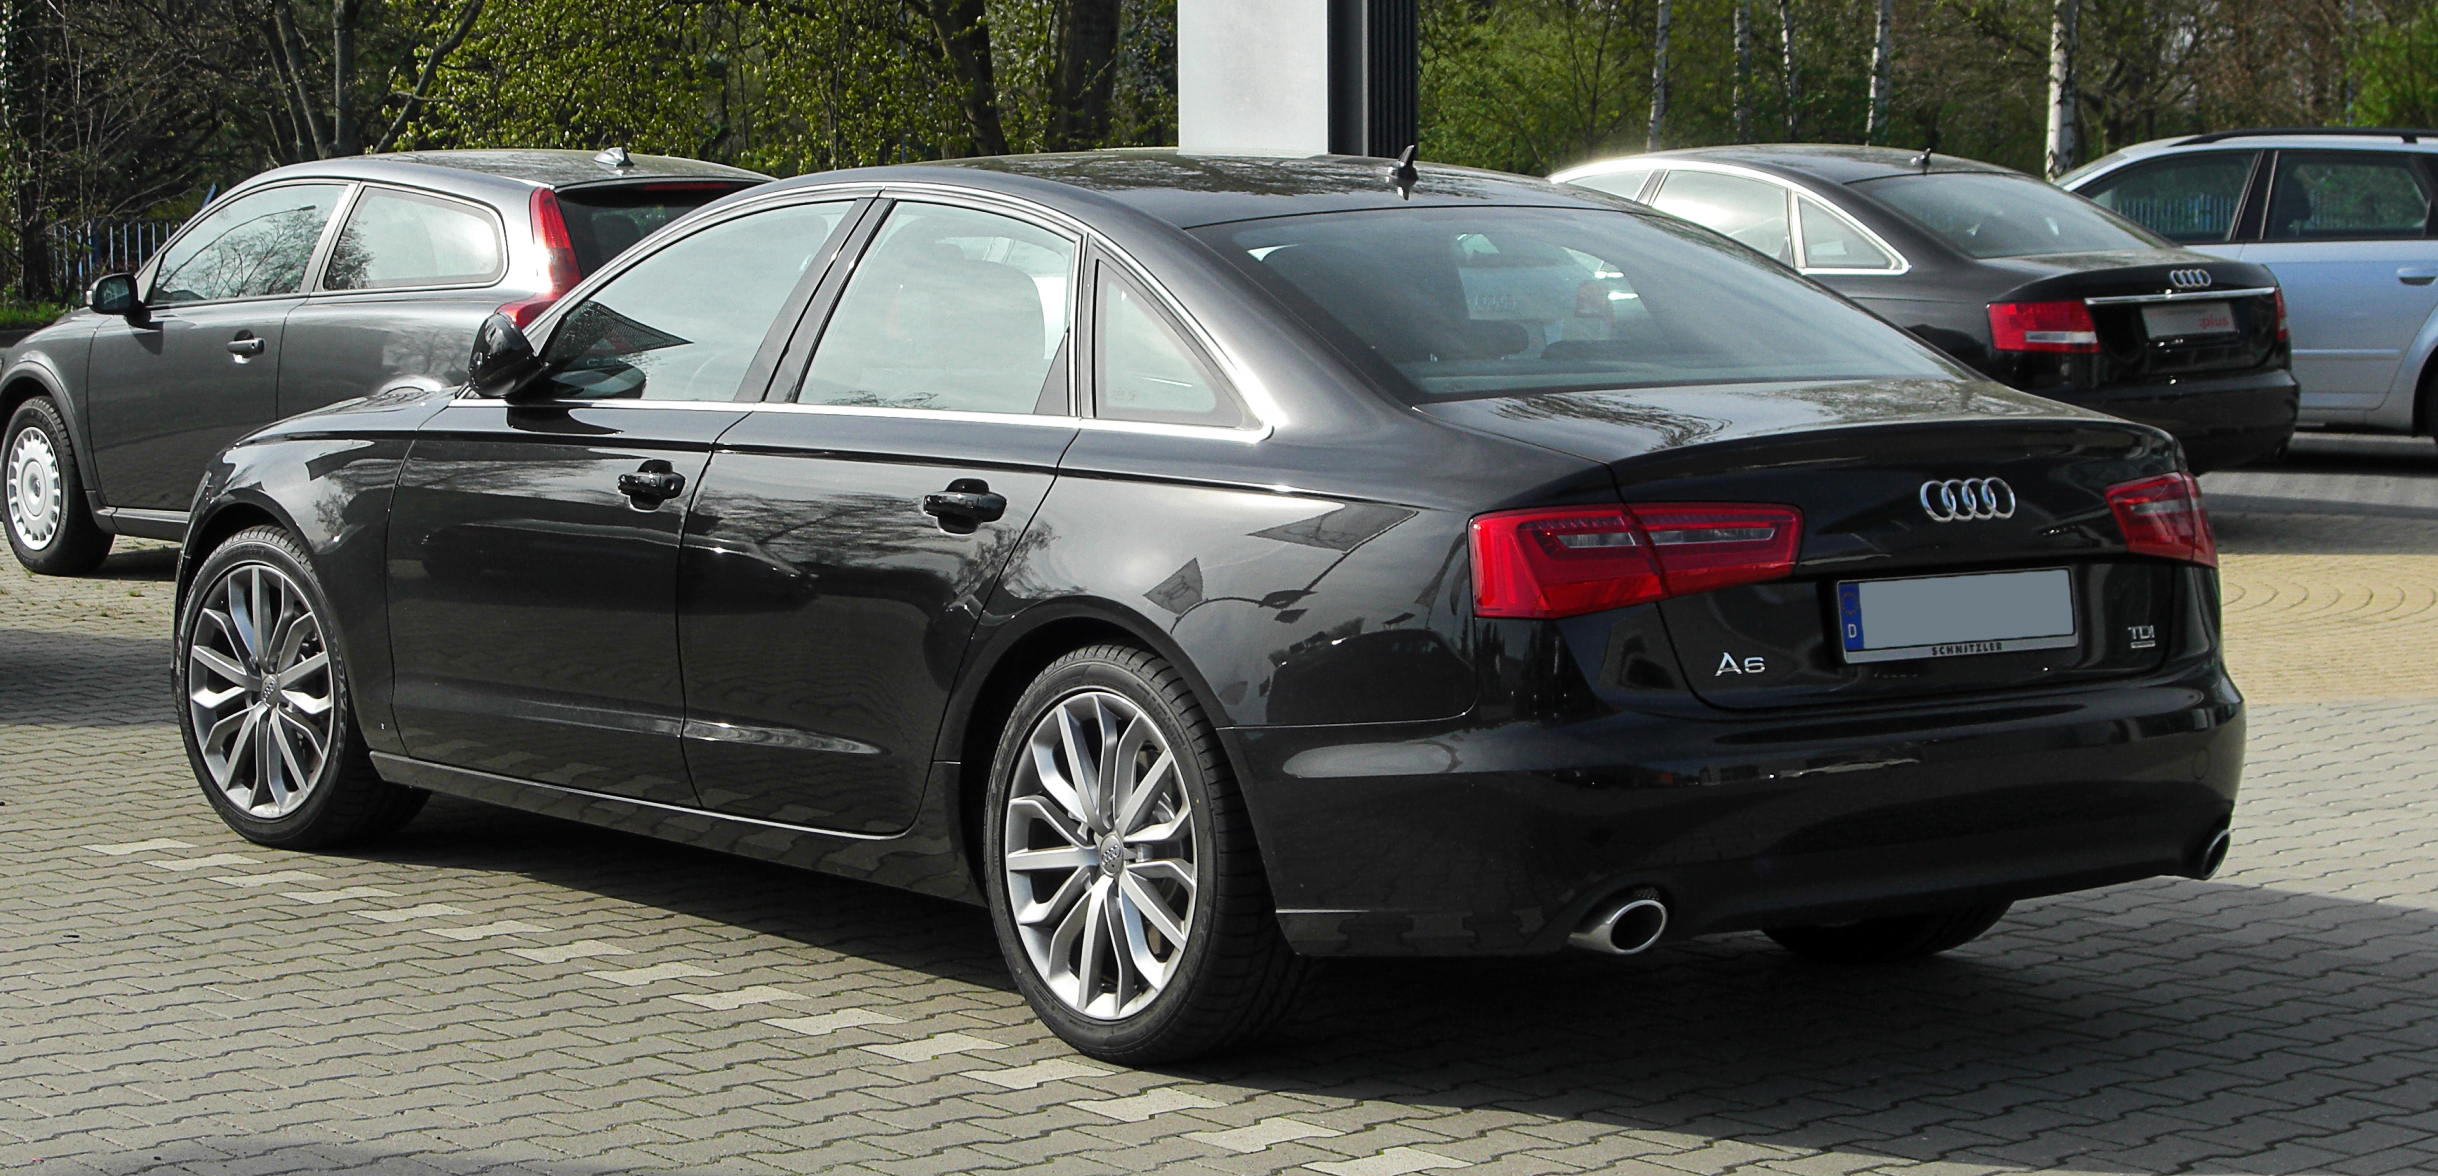 Description Audi A6 3.0 TDI quattro (C7) – Heckansicht, 2. April